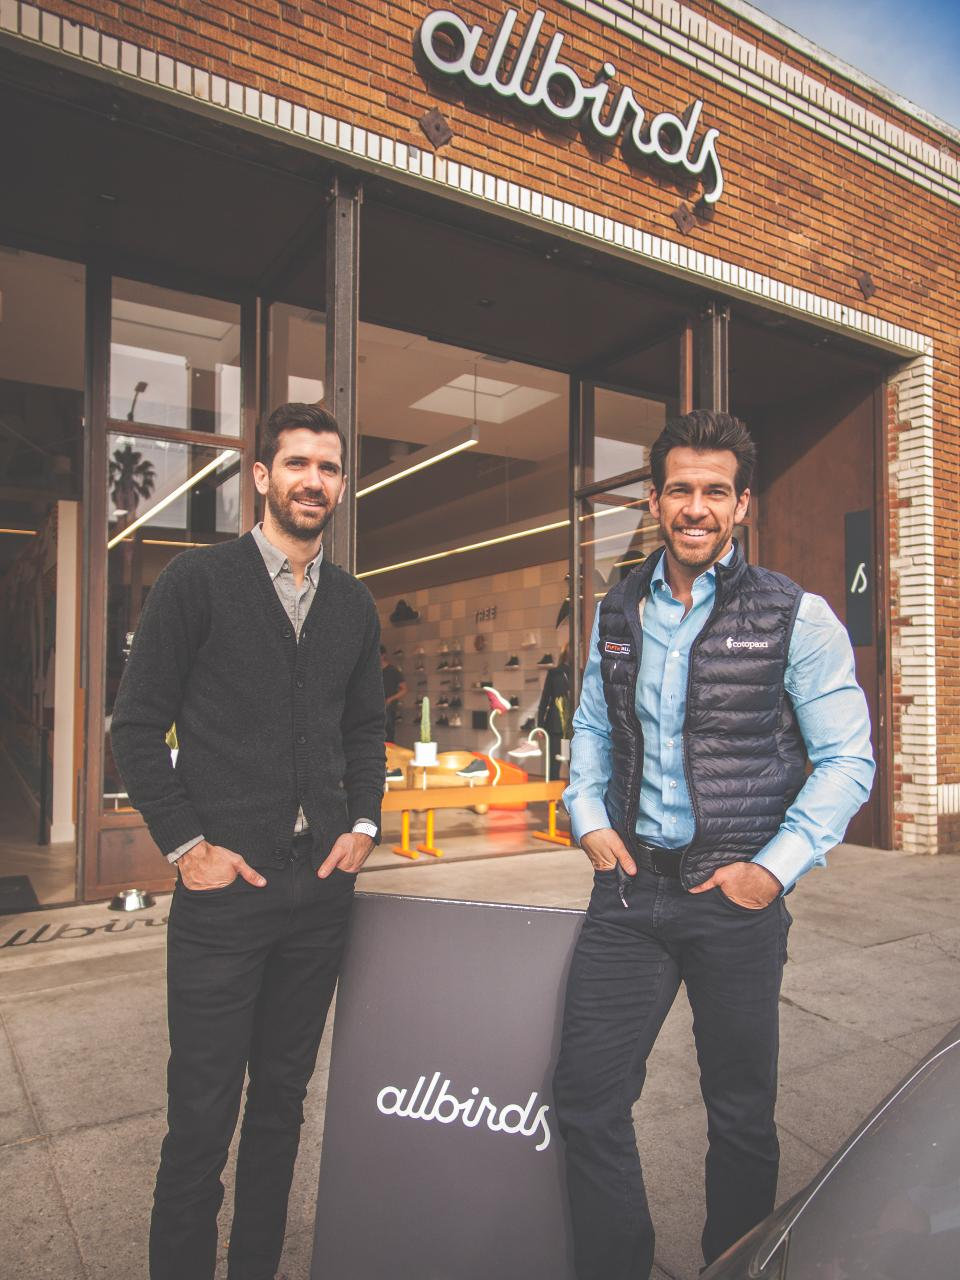 two smiling young men with hands jammed into front pocket of their jeans pose in front of Allbirds store.